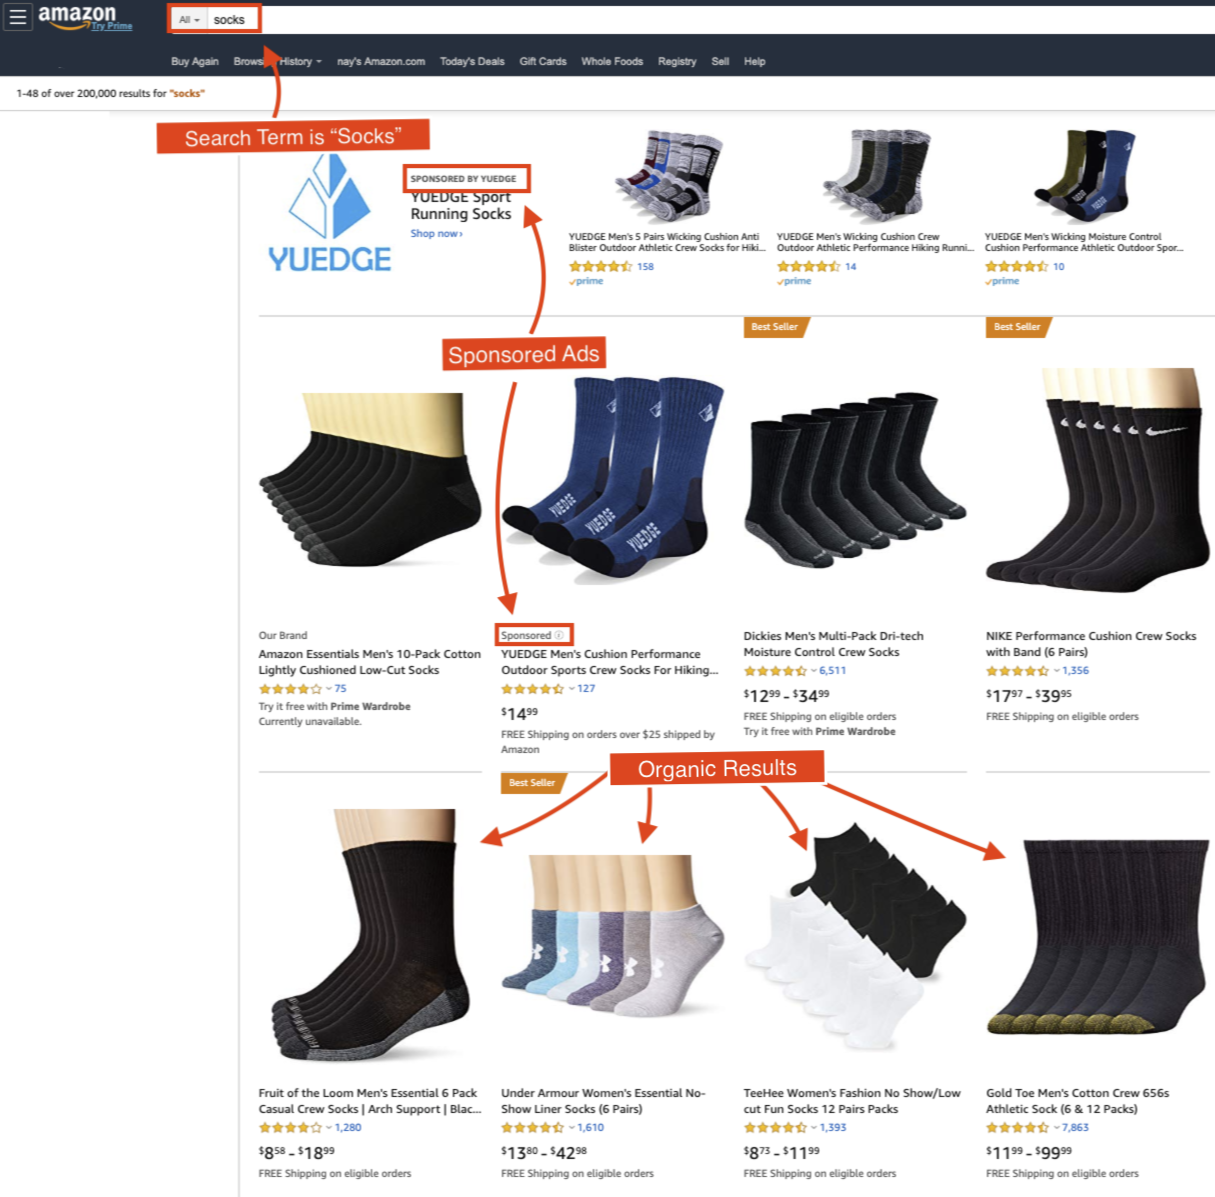 How to advertise on Amazon with PPC ads